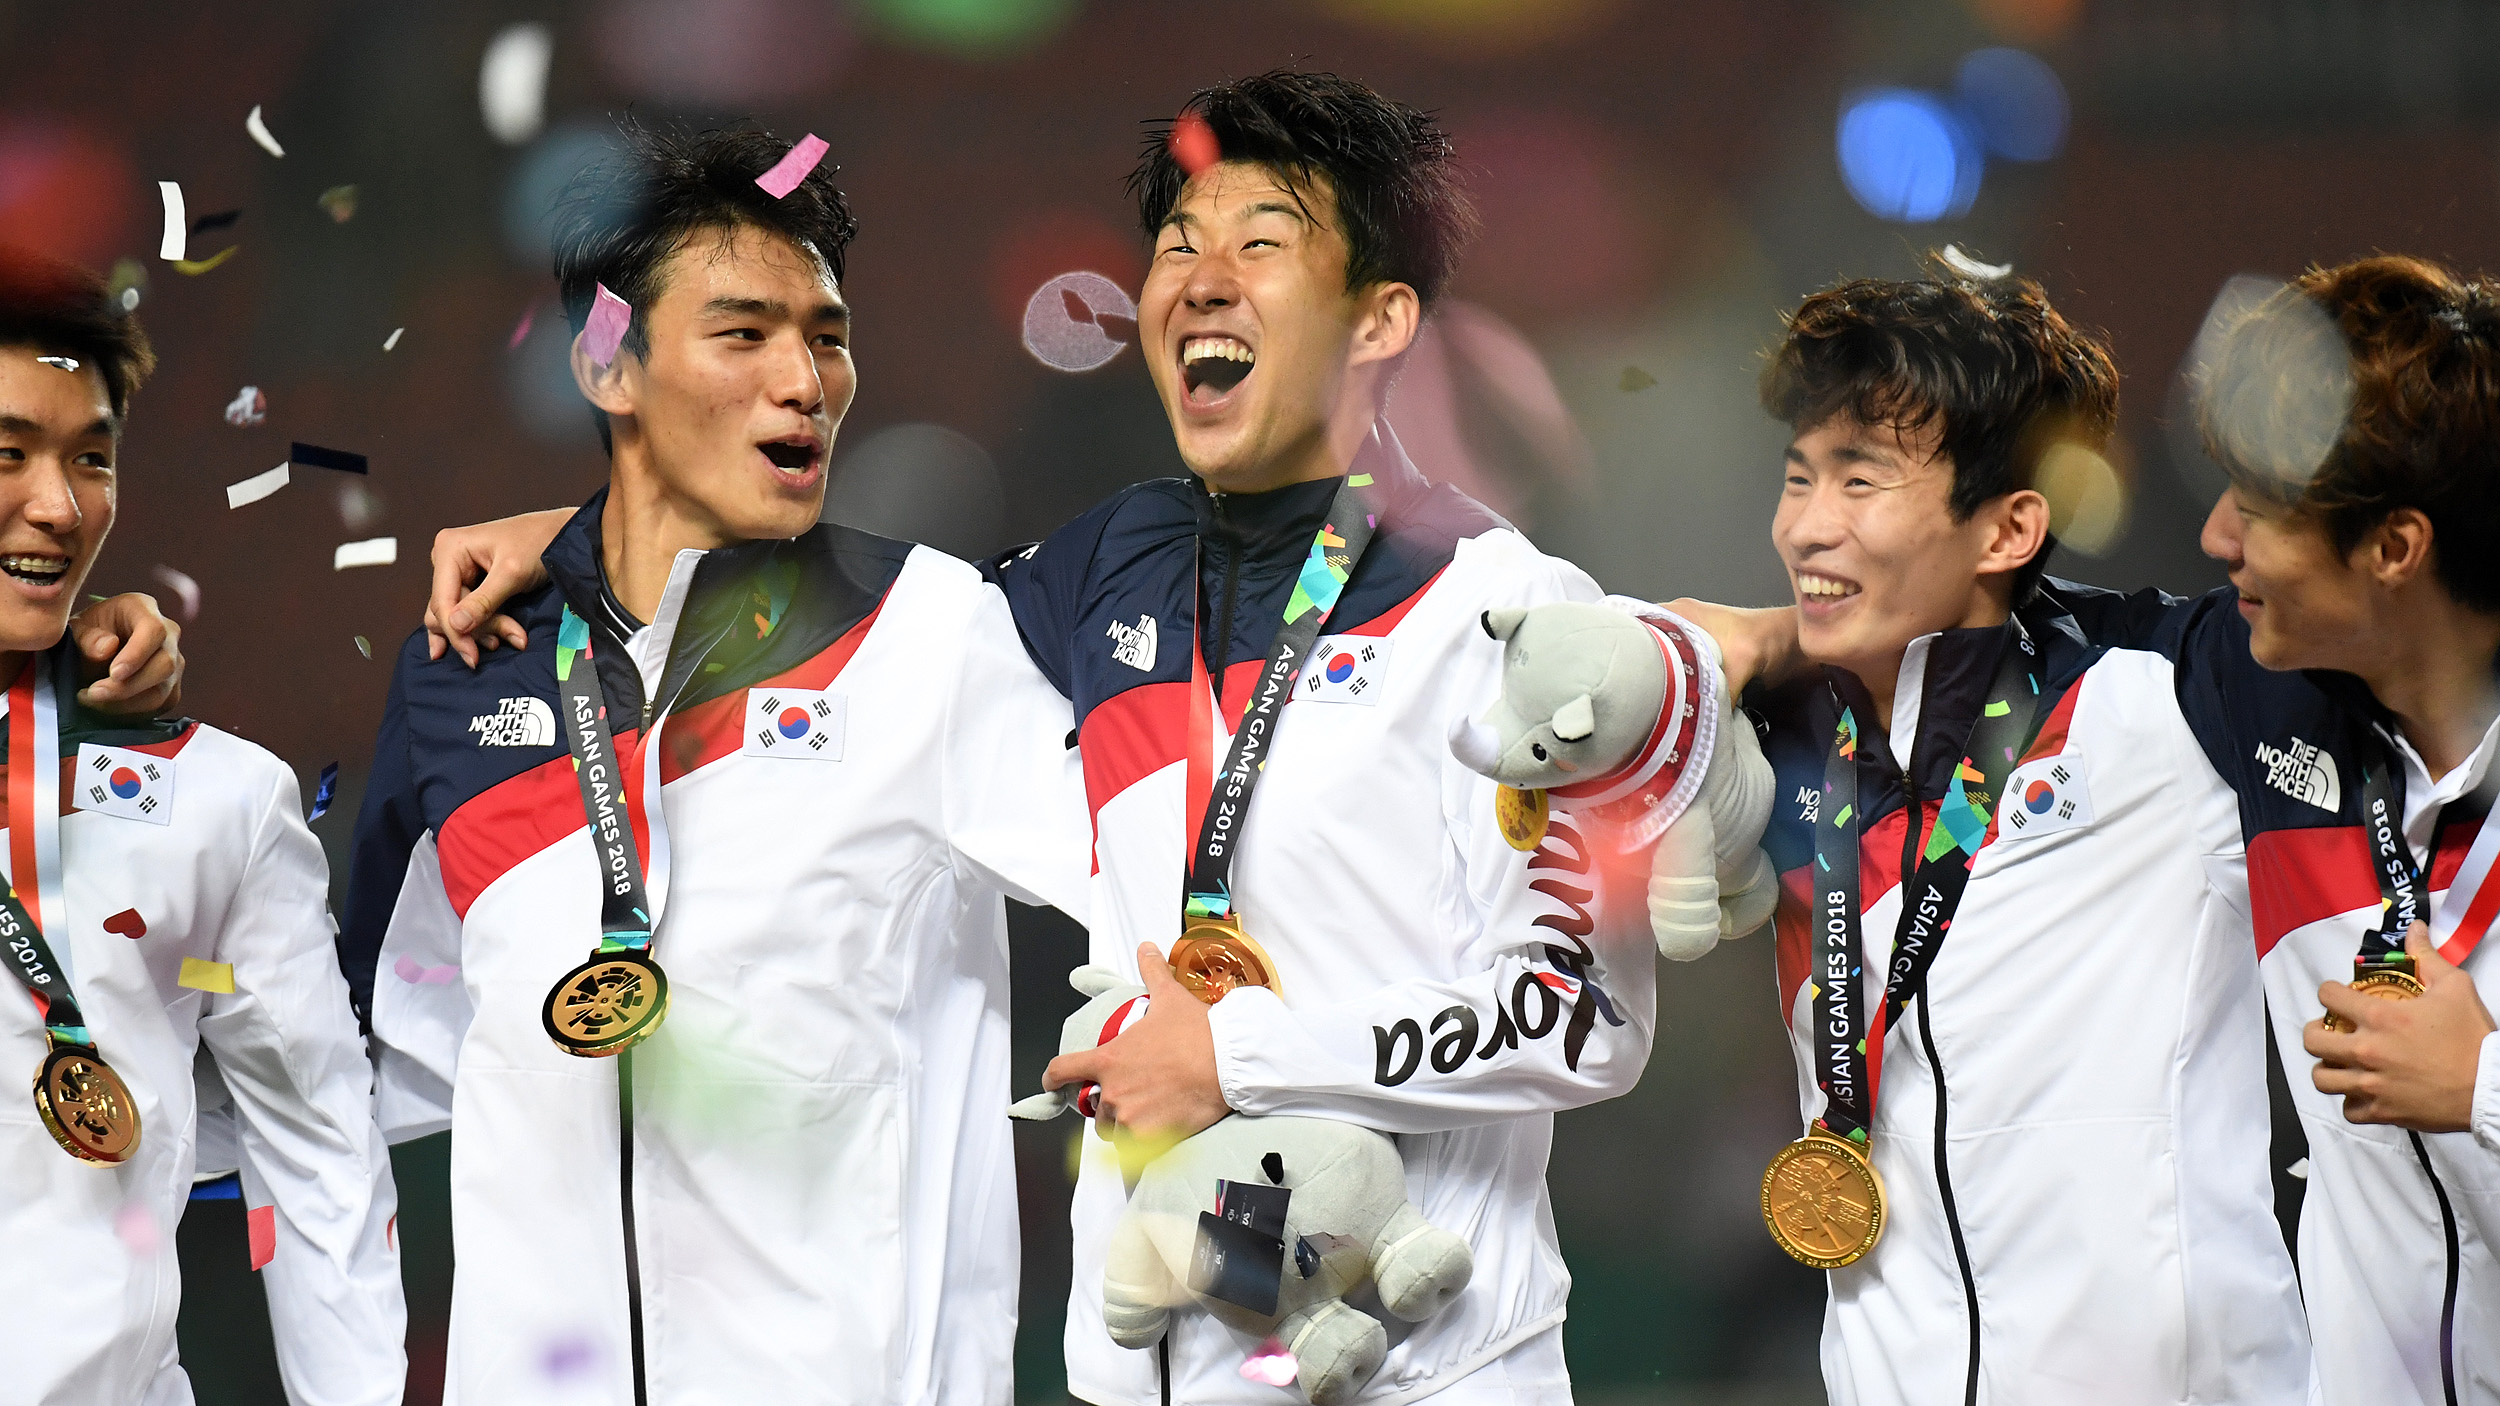 Son Heung-Min - Korea Selatan Asian Games 2018